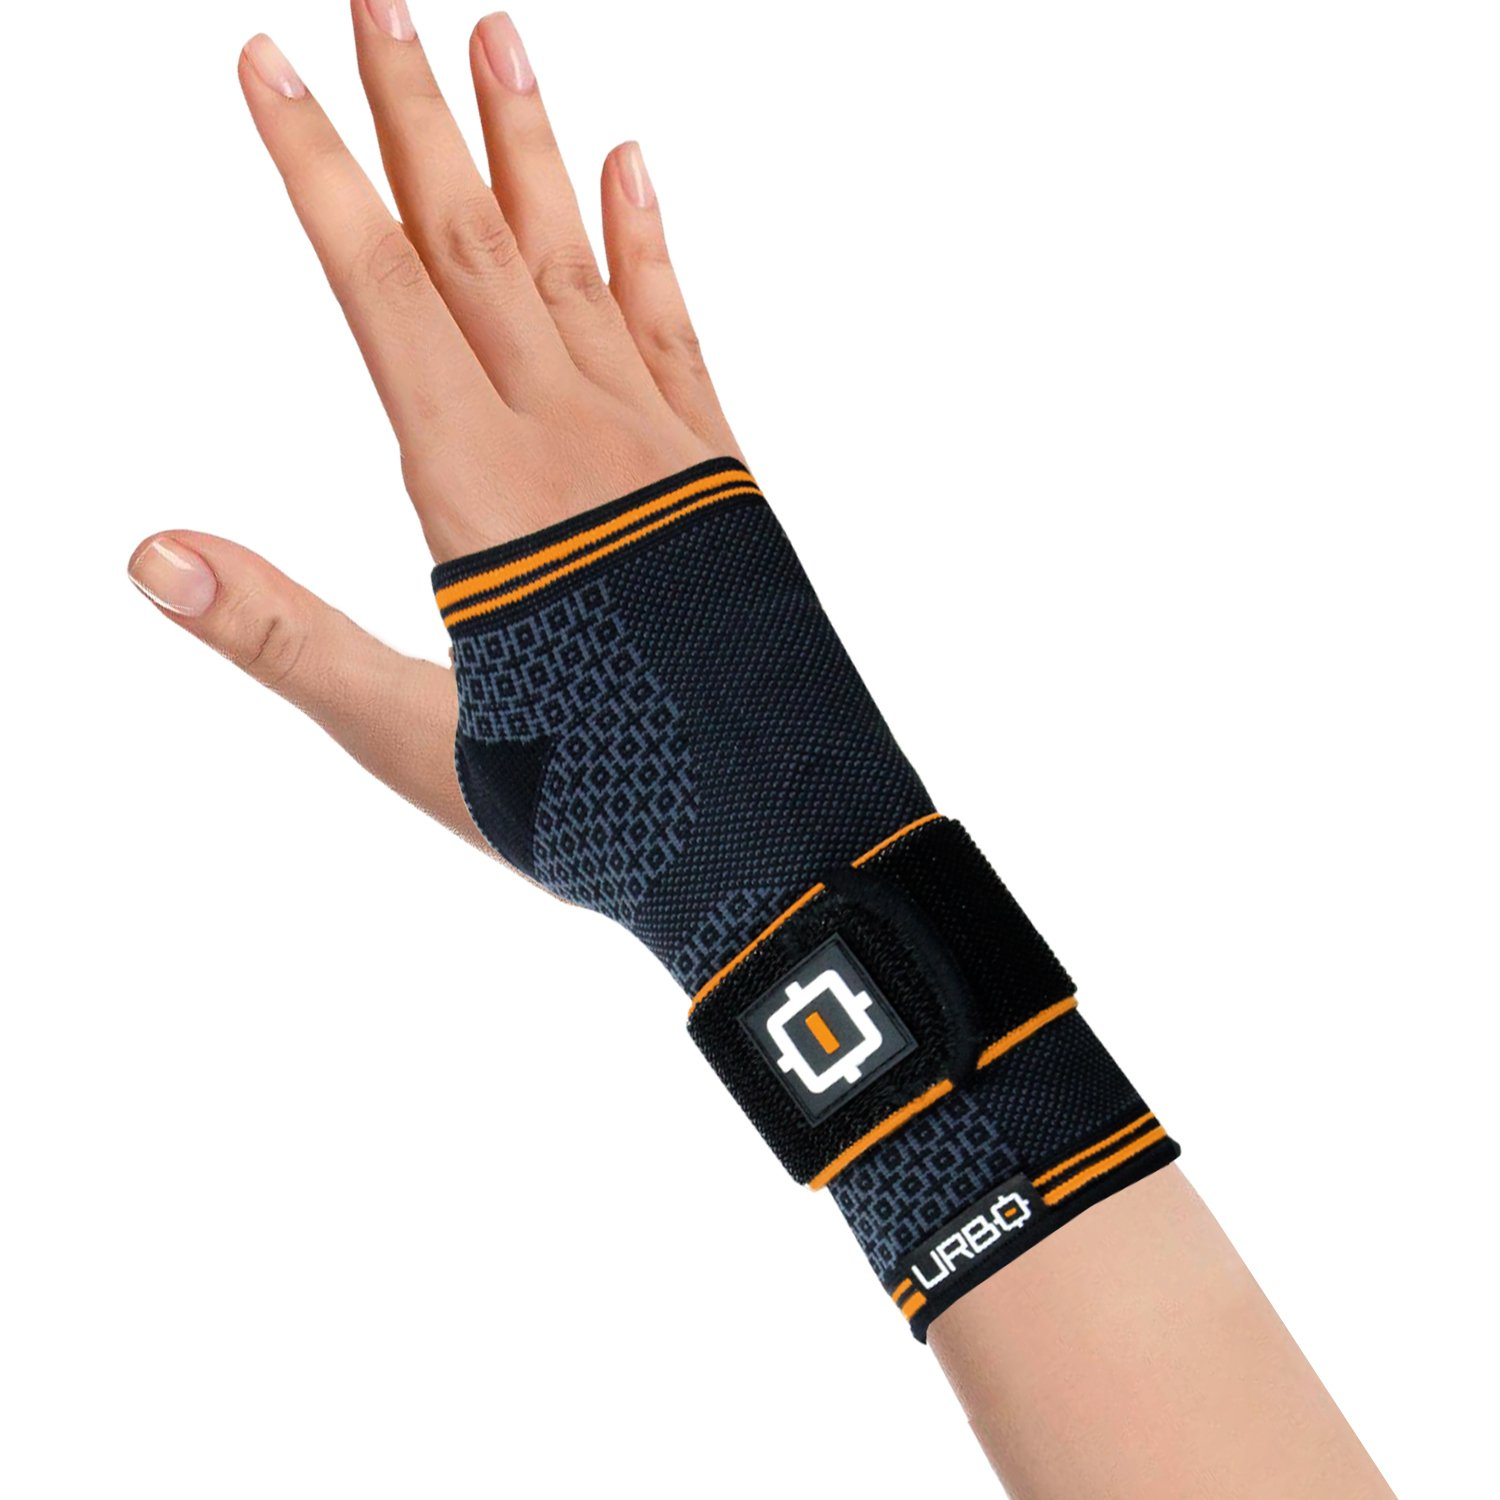 Urbo Wrist Compression Brace with Ergonomic Support for Computer Use Problems Such as Carpal Tunnel Syndrome, Mouse Wrist, Tendinosis and Other Repetitive Strain Injuries (Medium, Right)